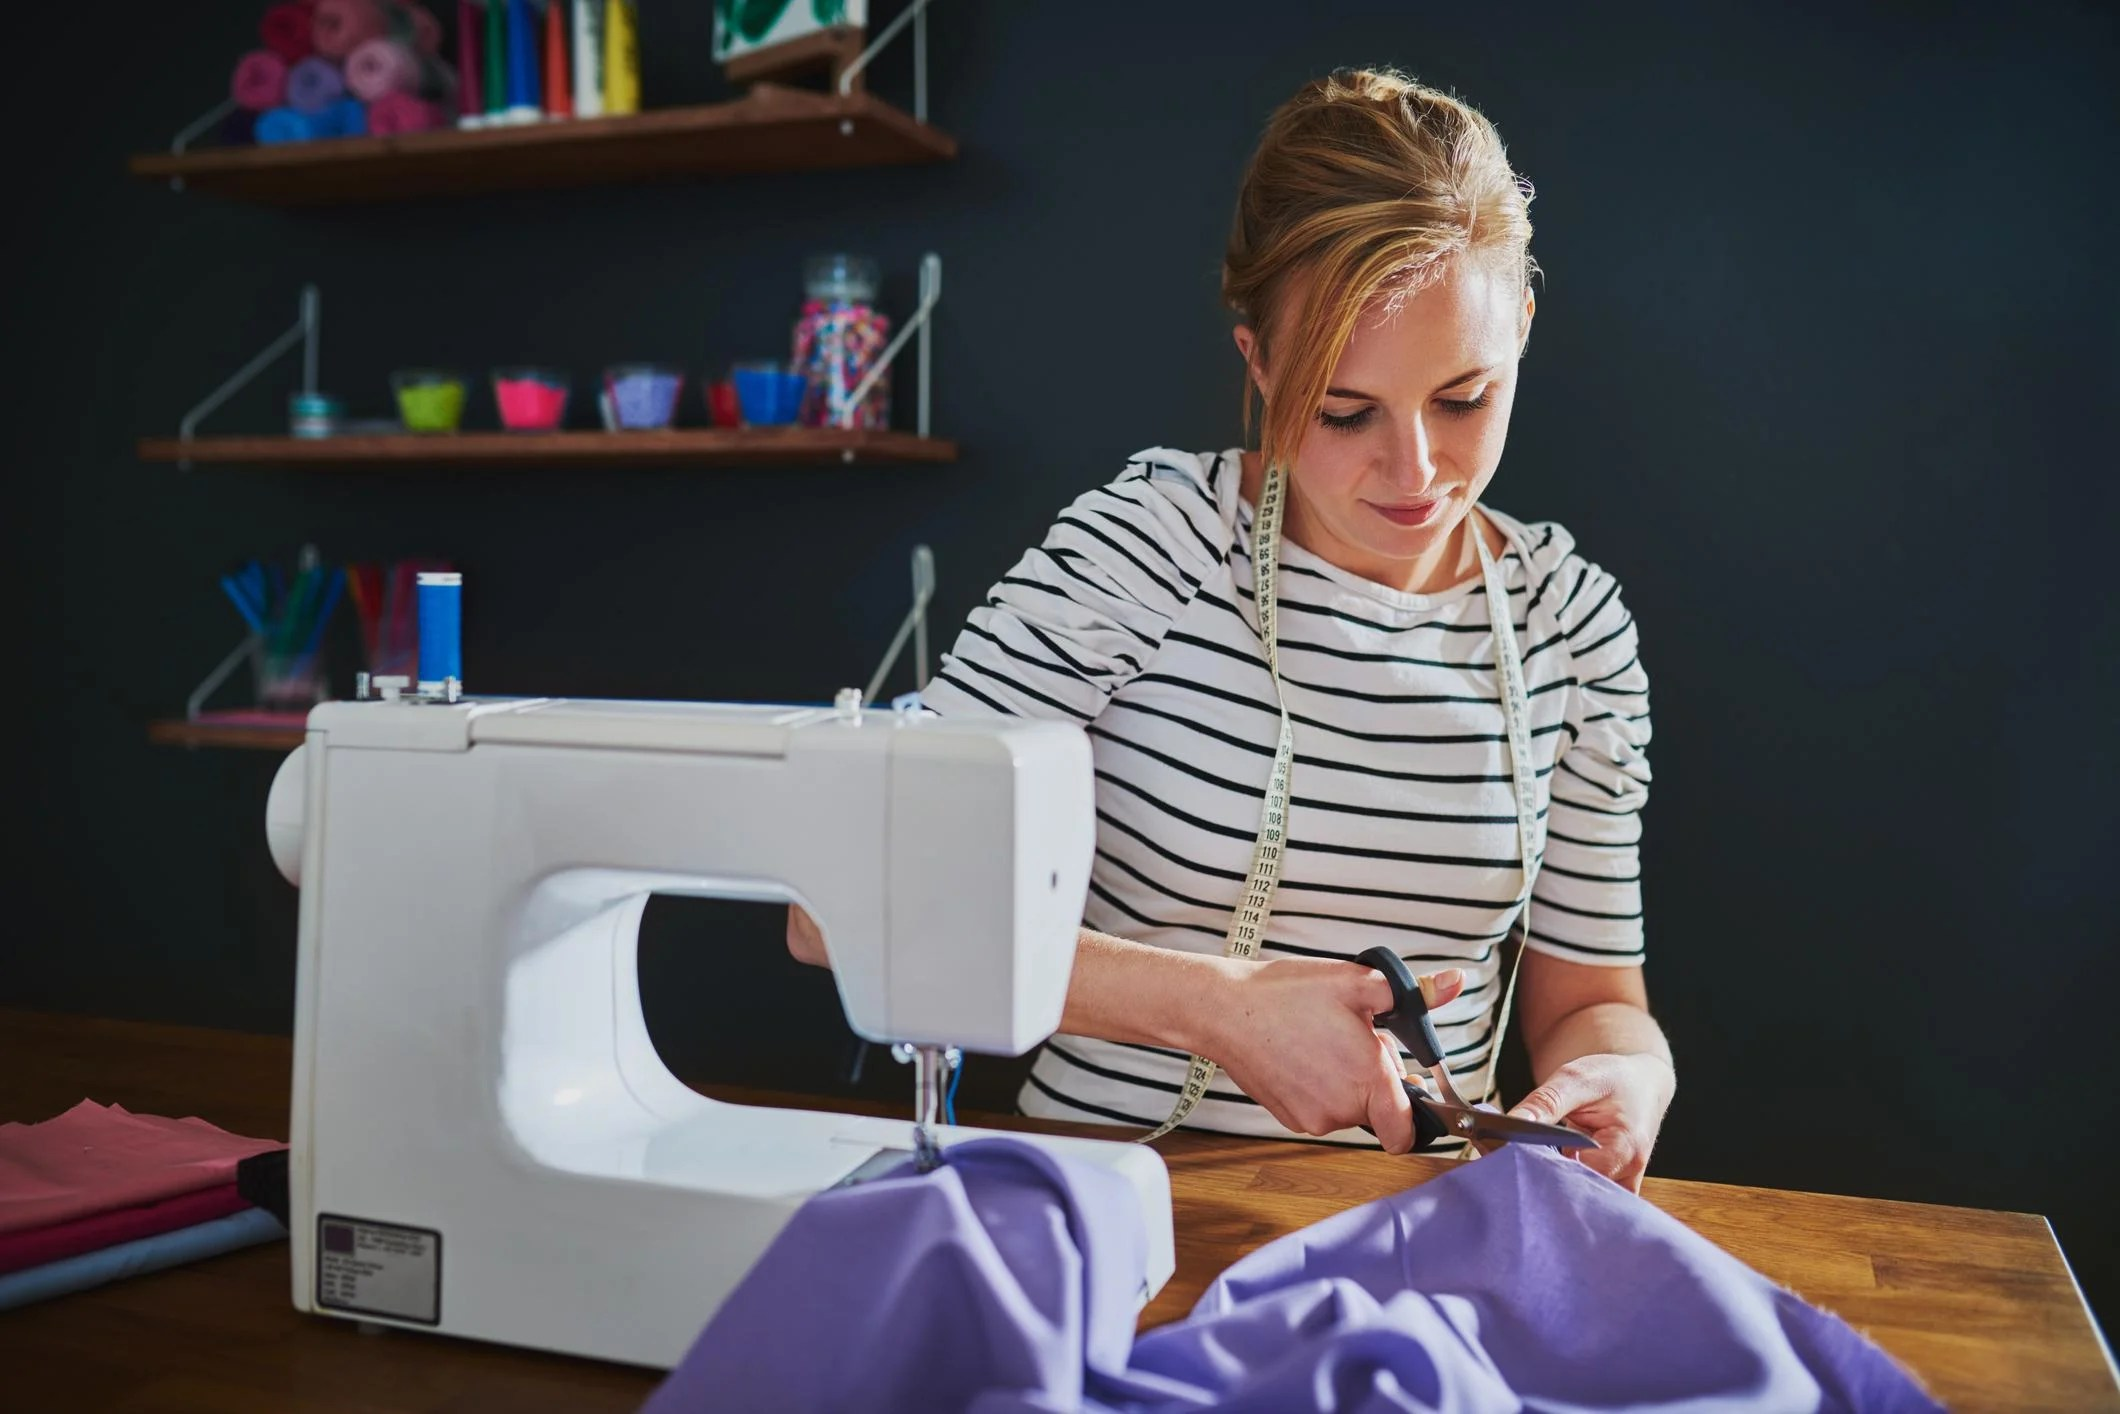 Cheap Sewing Machines Australia 8 Best Sewing Machines For Beginners The Independent